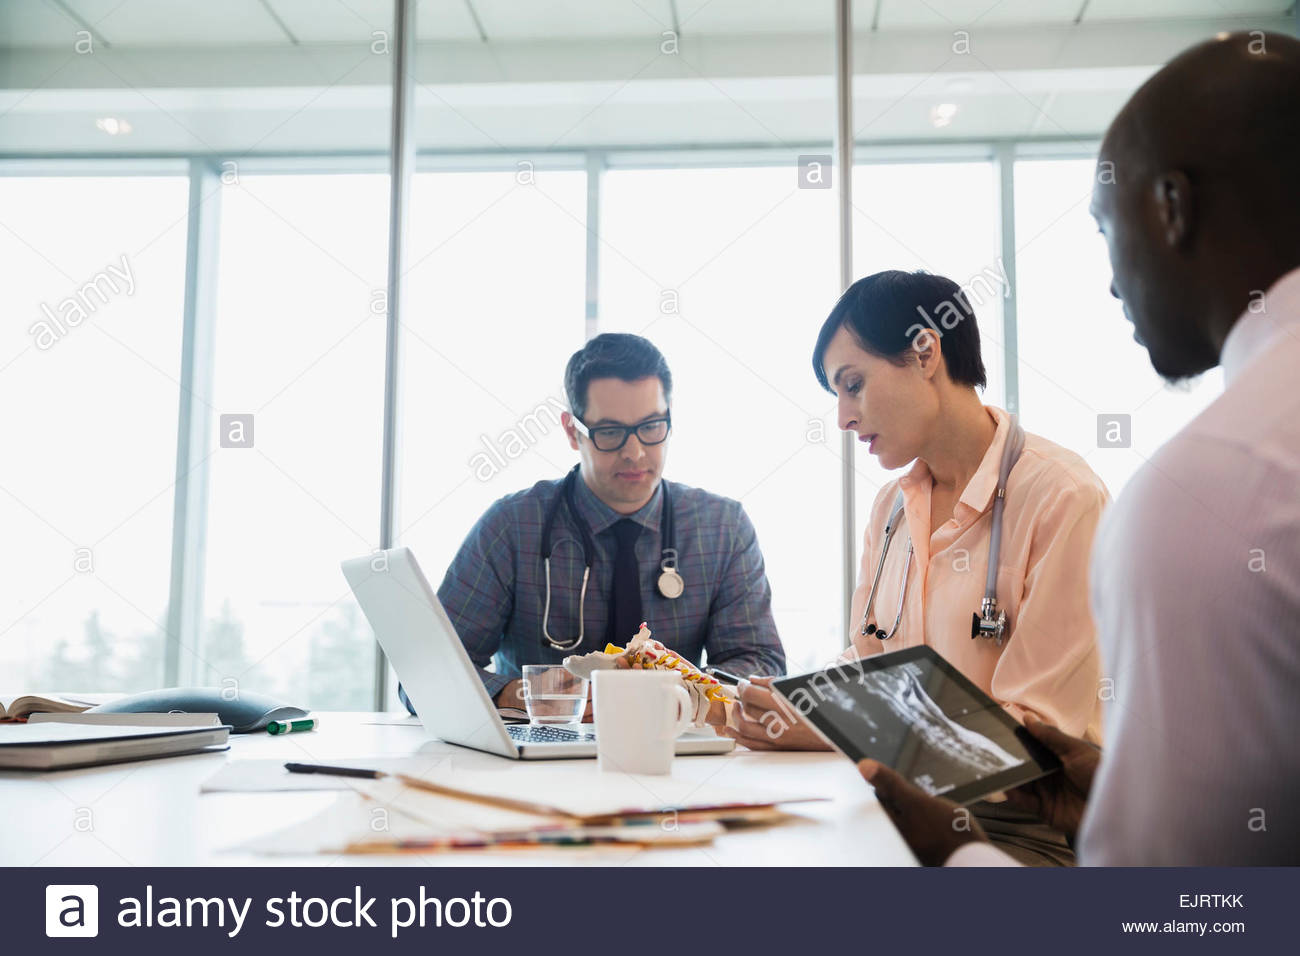 Doctors discussing bone model and viewing x-rays - Stock Image